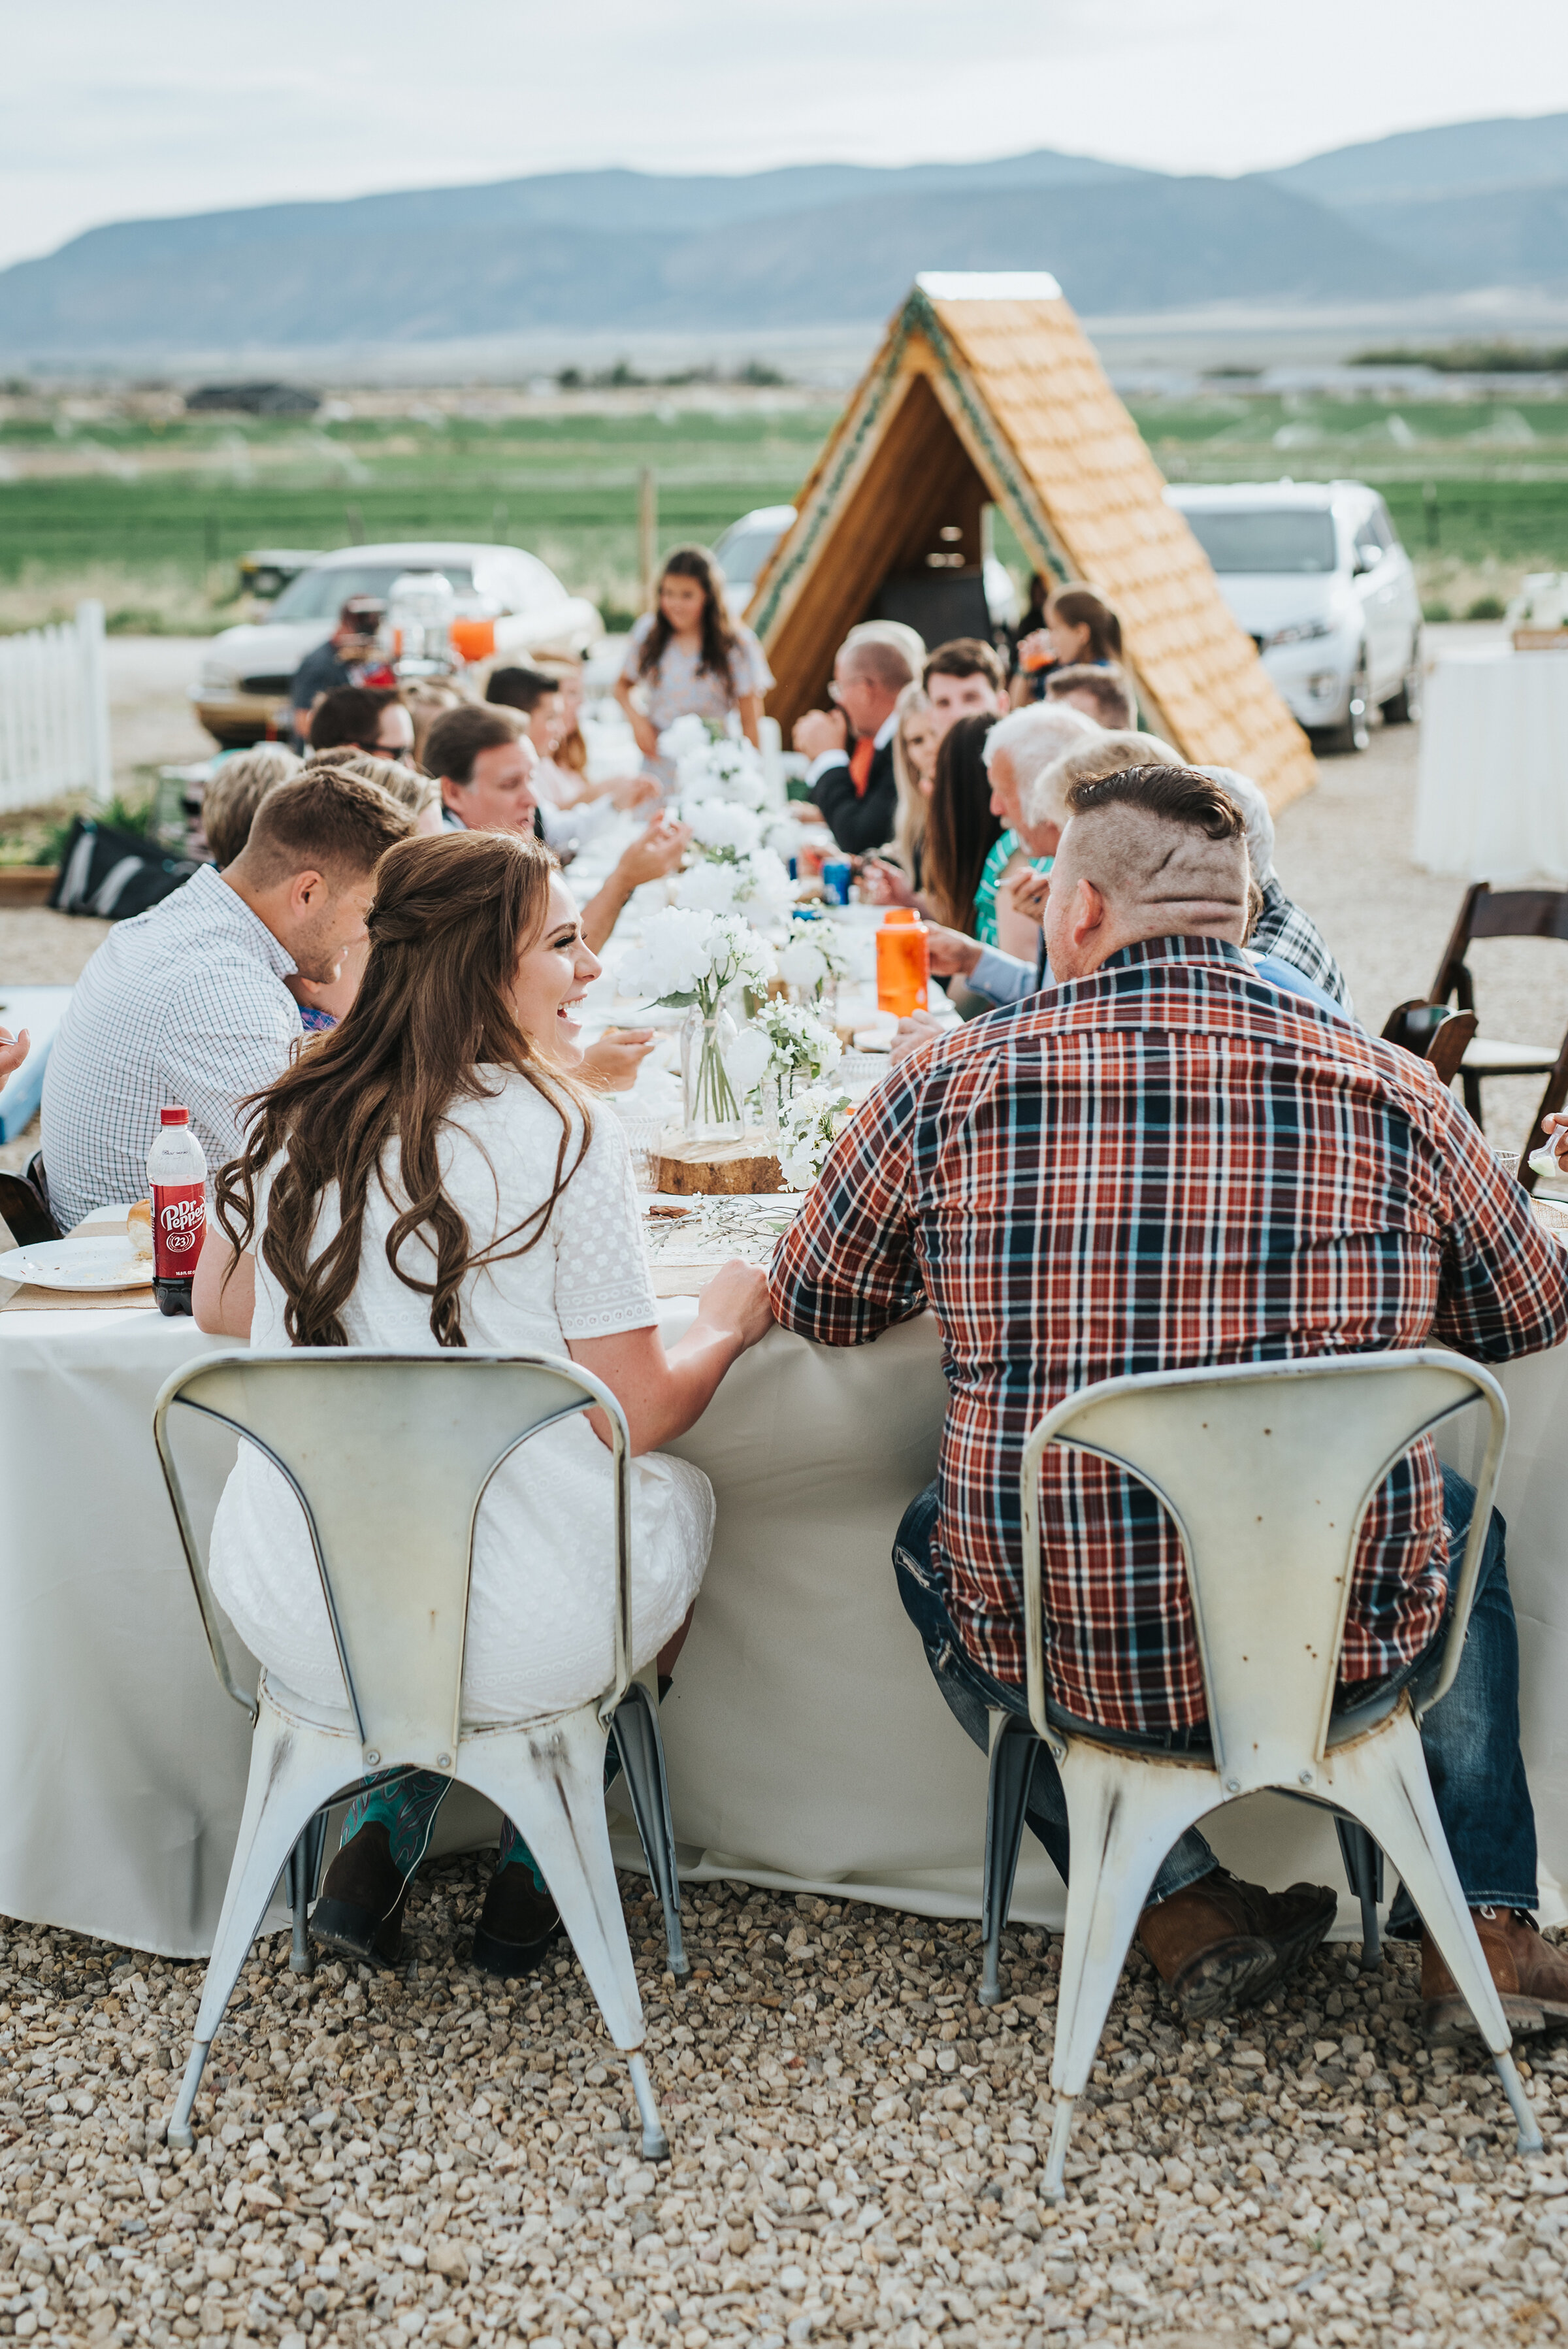 The party continued on their wedding day with an intimate luncheon and gathering to celebrate the newly joined bride and groom! photoshoot in Ephraim Utah photography wedding outdoor location western inspired rustic Airbnb photo aesthetic #ephraimutah #utahphotography #weddingdayphotography #gettingmarried #rusticwedding #utahwedding #westernstyle #weddingphotoshoot